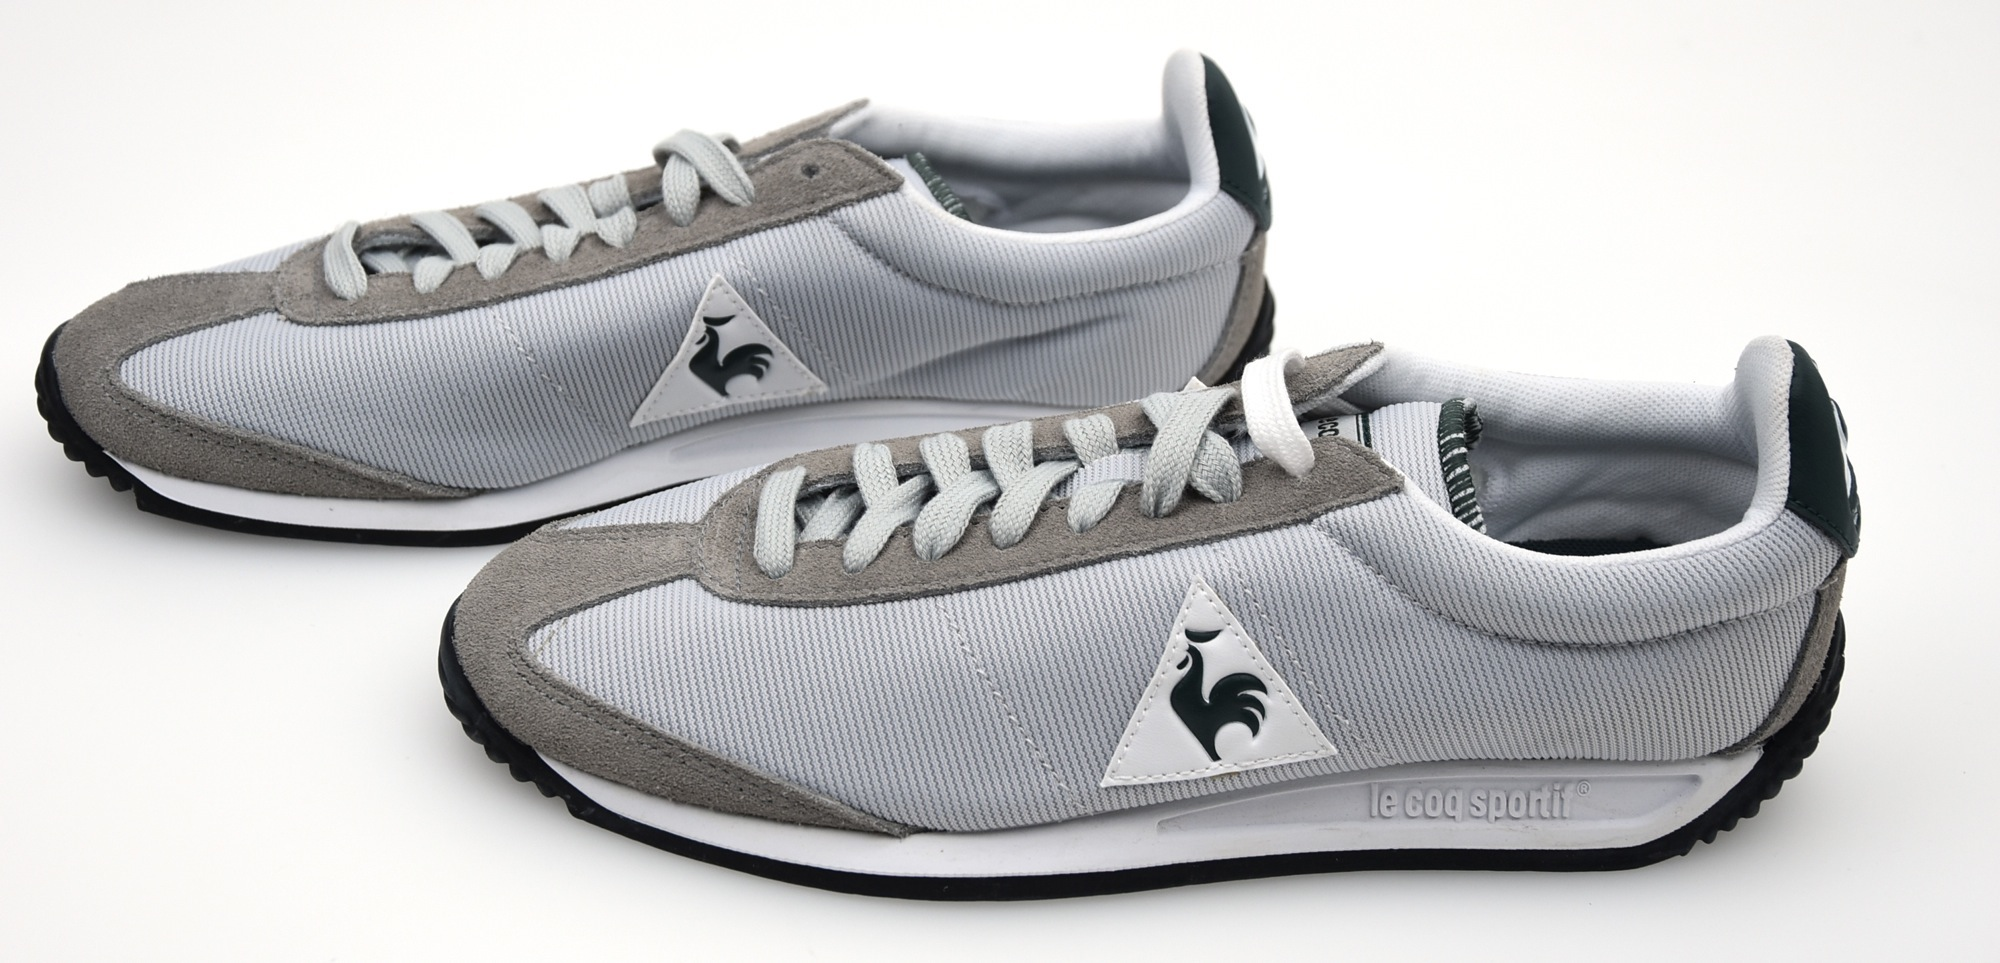 le coq sportif scarpa sneaker uomo art quartz nylon 1611751 1611755 1611749 ebay. Black Bedroom Furniture Sets. Home Design Ideas